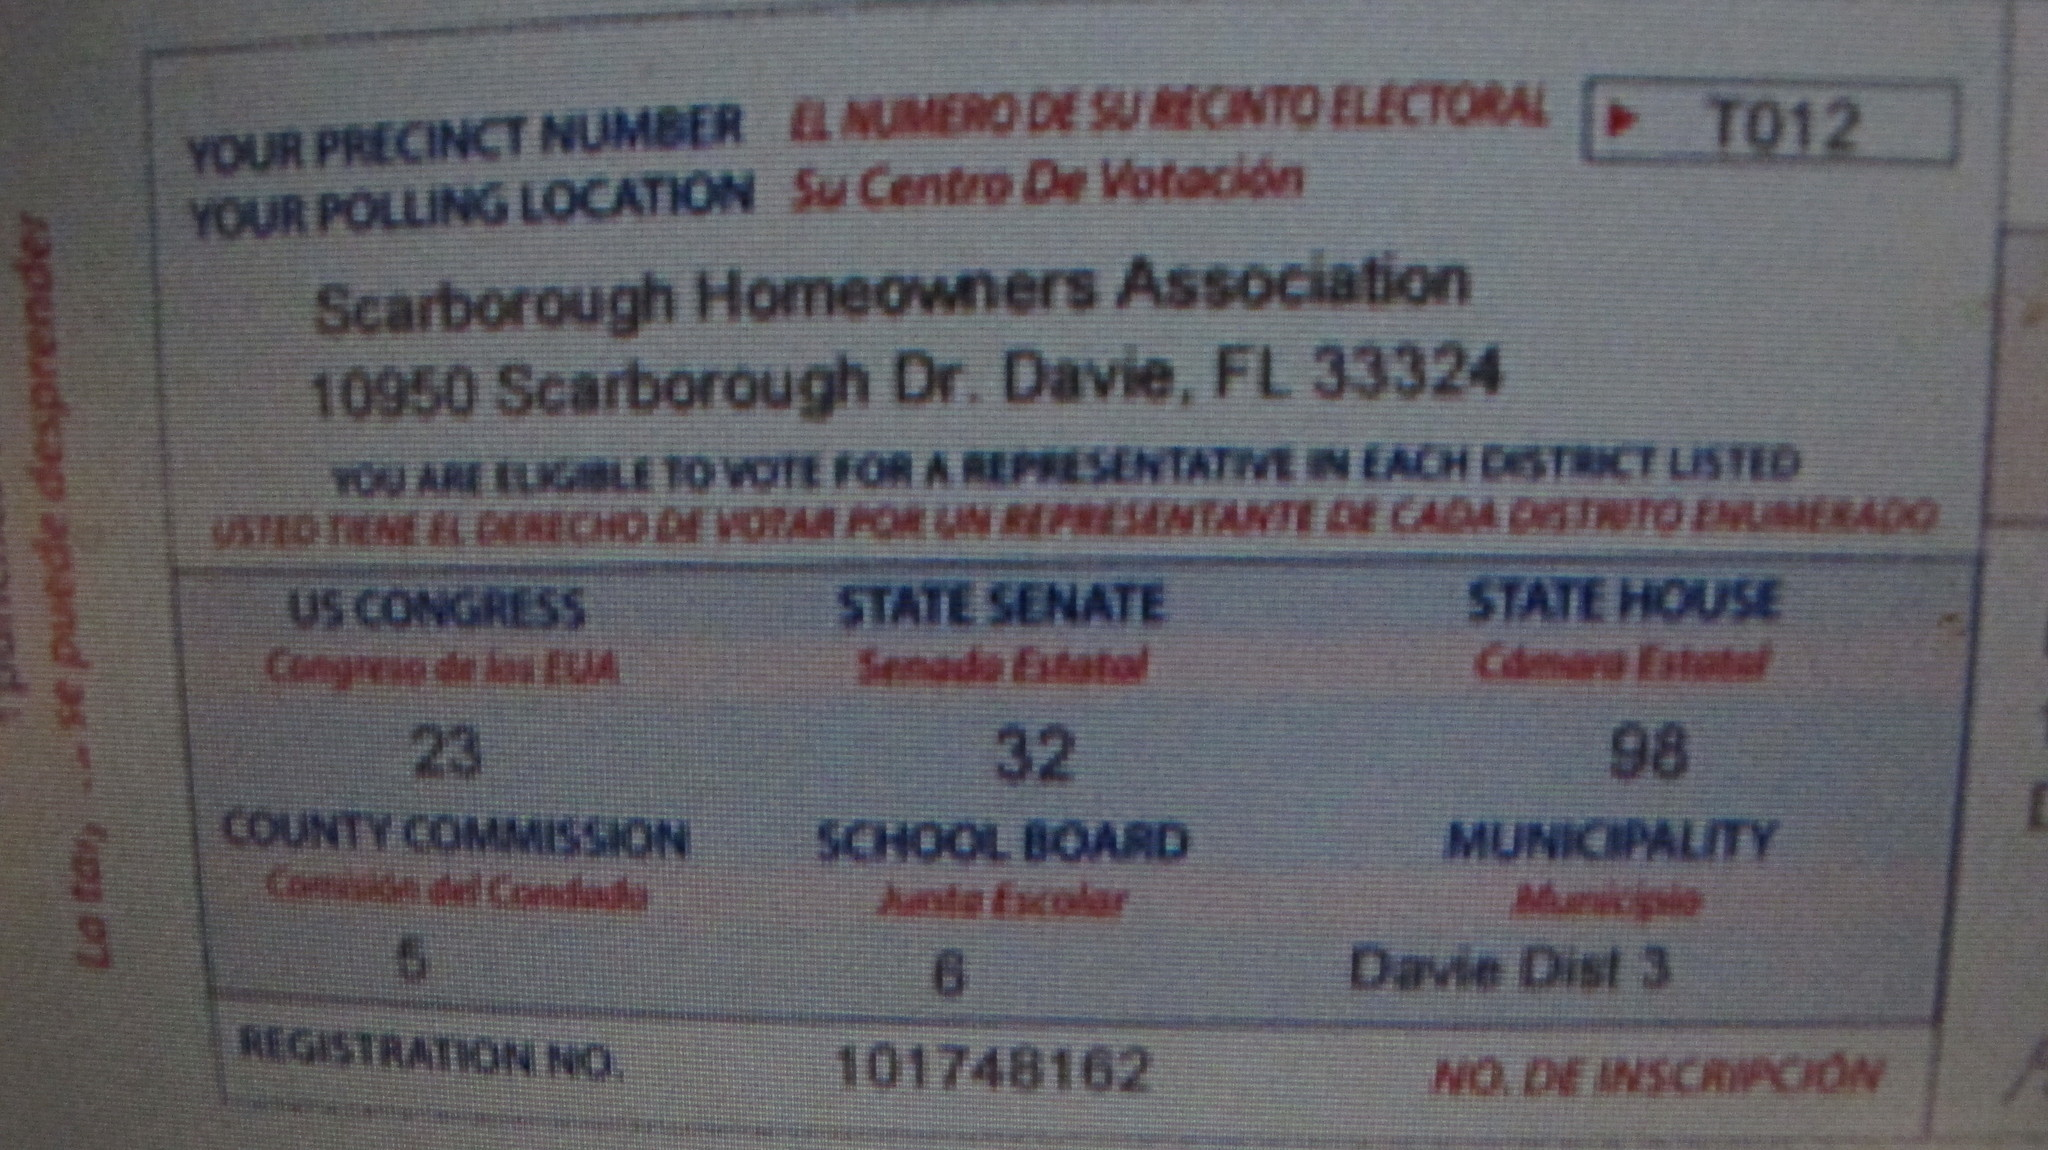 And if you're not registered, we'll help you take care of that too. Broward County Voter Registration Card Replacement   Webcas.org